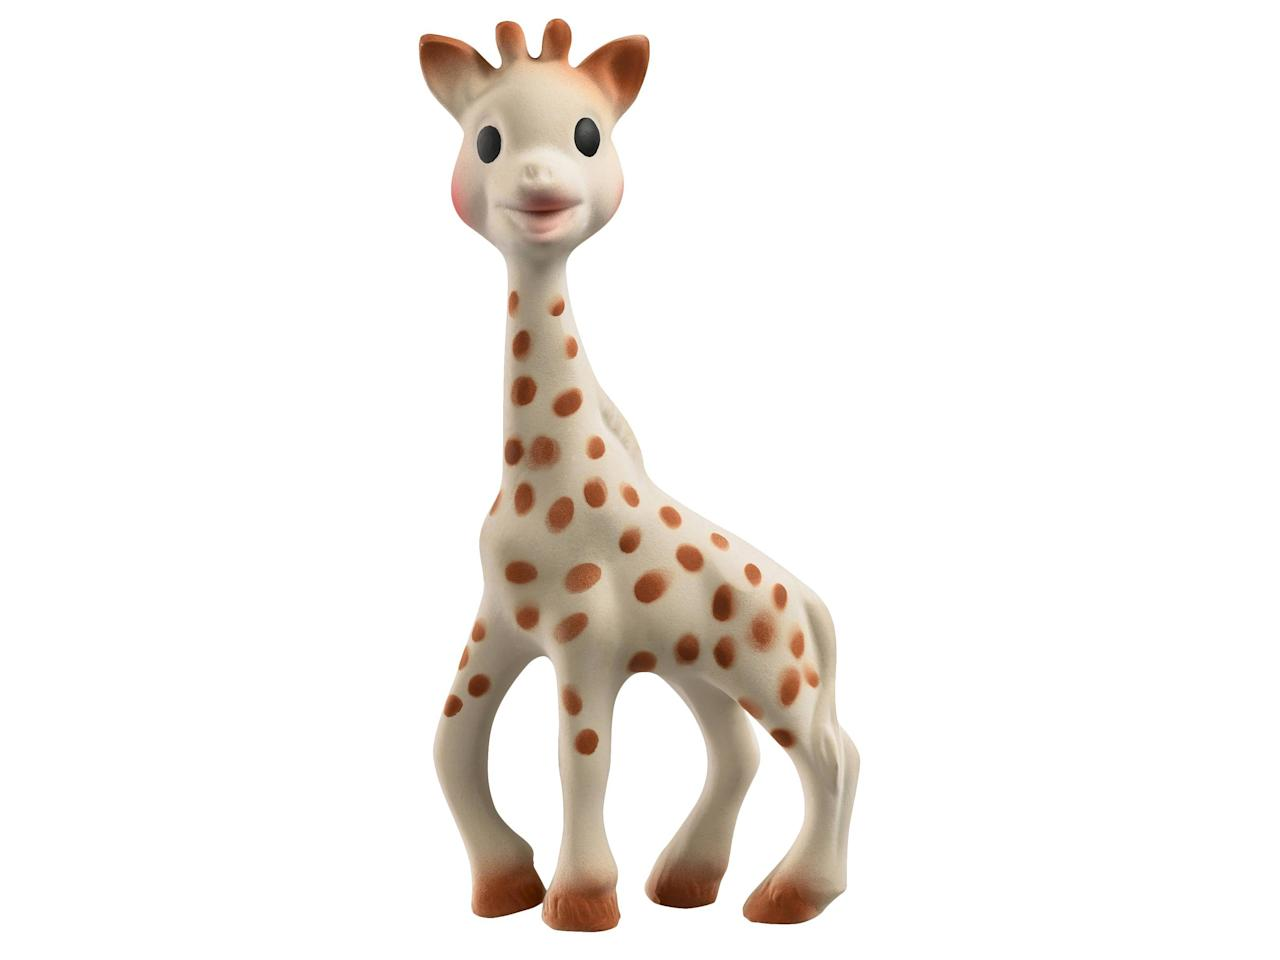 "<p>""You've probably heard of Sophie the Giraffe in some form or another. This toy is SO popular! I don't know why babies love it so much, but they do.""</p><p>Buy it <a rel=""nofollow"" href=""https://www.target.com/p/sophie-la-girafe-teether/-/A-15286048"">here</a> for $25.</p>"